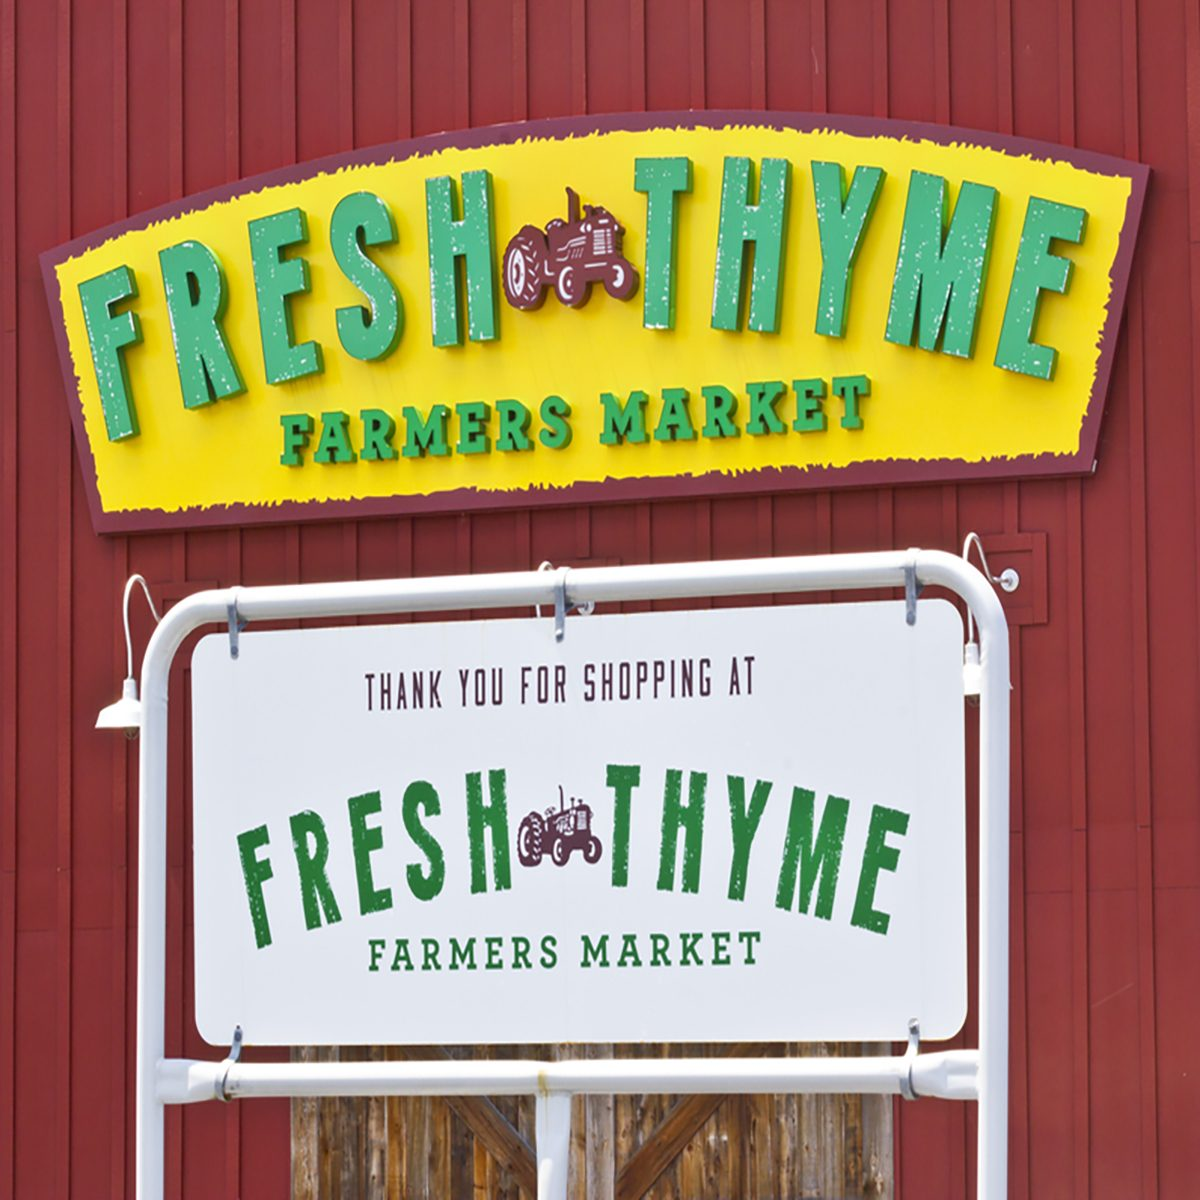 Fresh Thyme Farmers Market. Fresh Thyme Offers Fresh and Healthy Food at Amazing Values